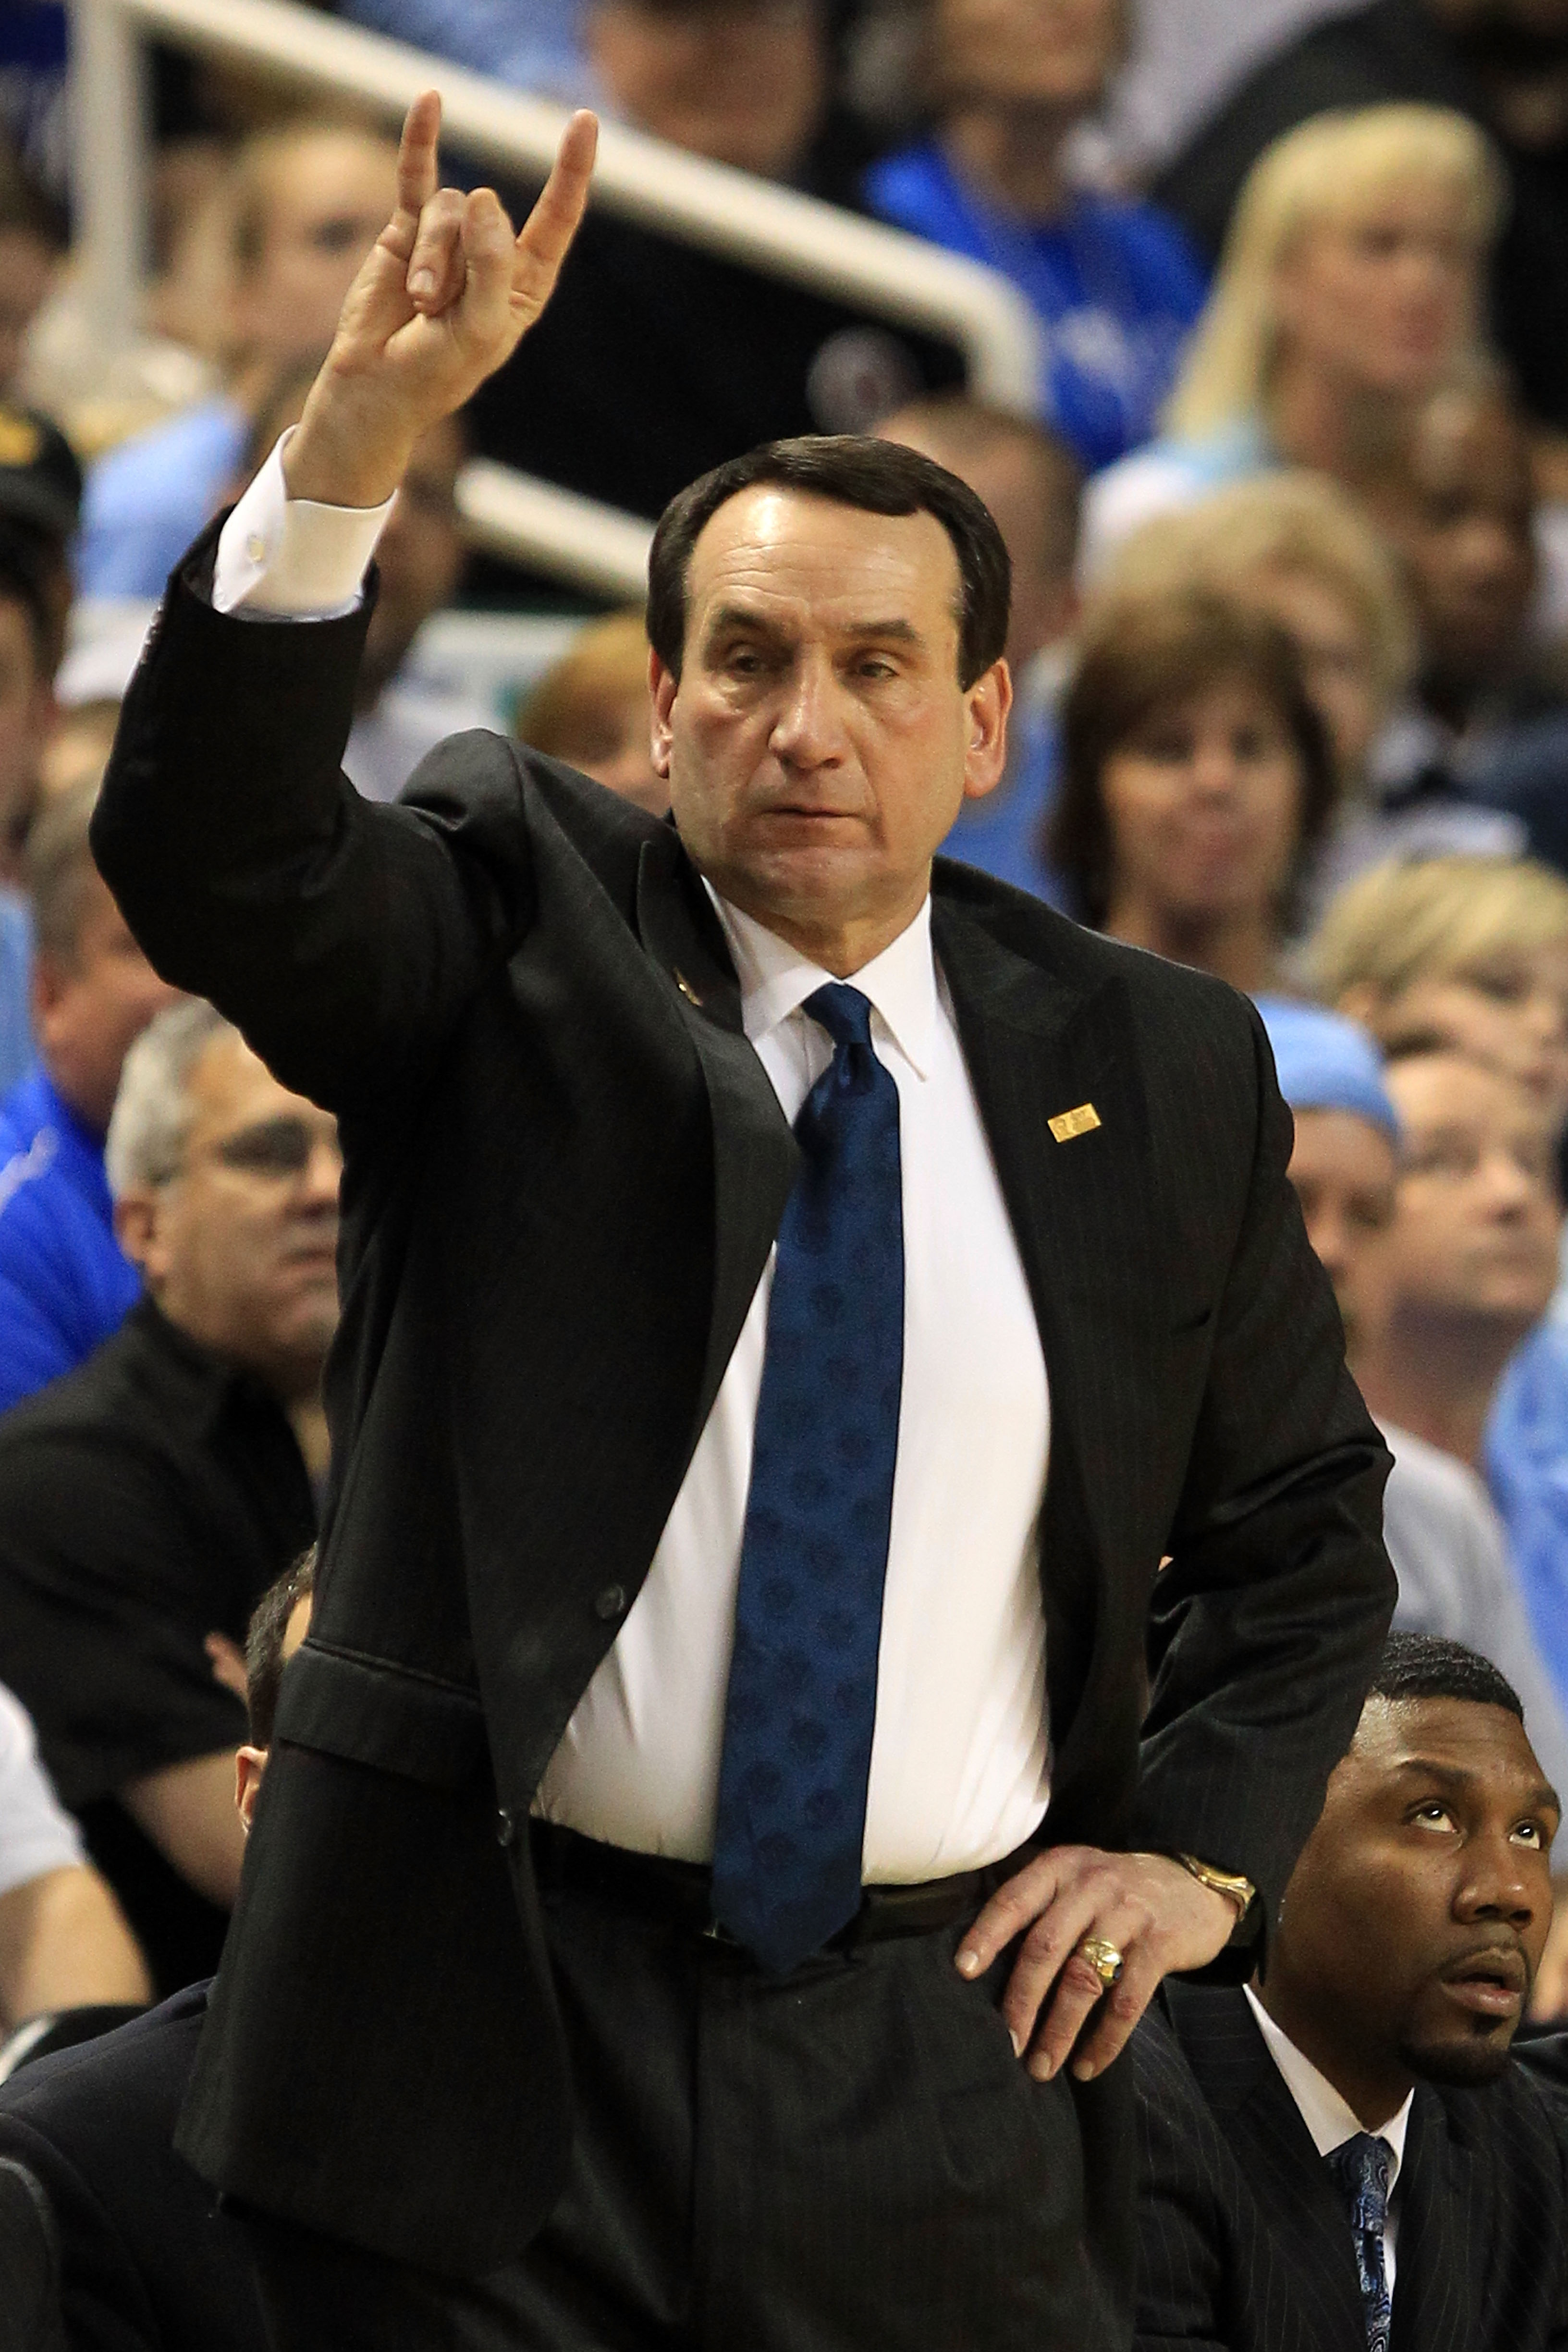 GREENSBORO, NC - MARCH 13:  Head coach Mike Krzyzewski of the Duke Blue Devils reacts during the second half in the championship game of the 2011 ACC men's basketball tournament at the Greensboro Coliseum on March 13, 2011 in Greensboro, North Carolina. D